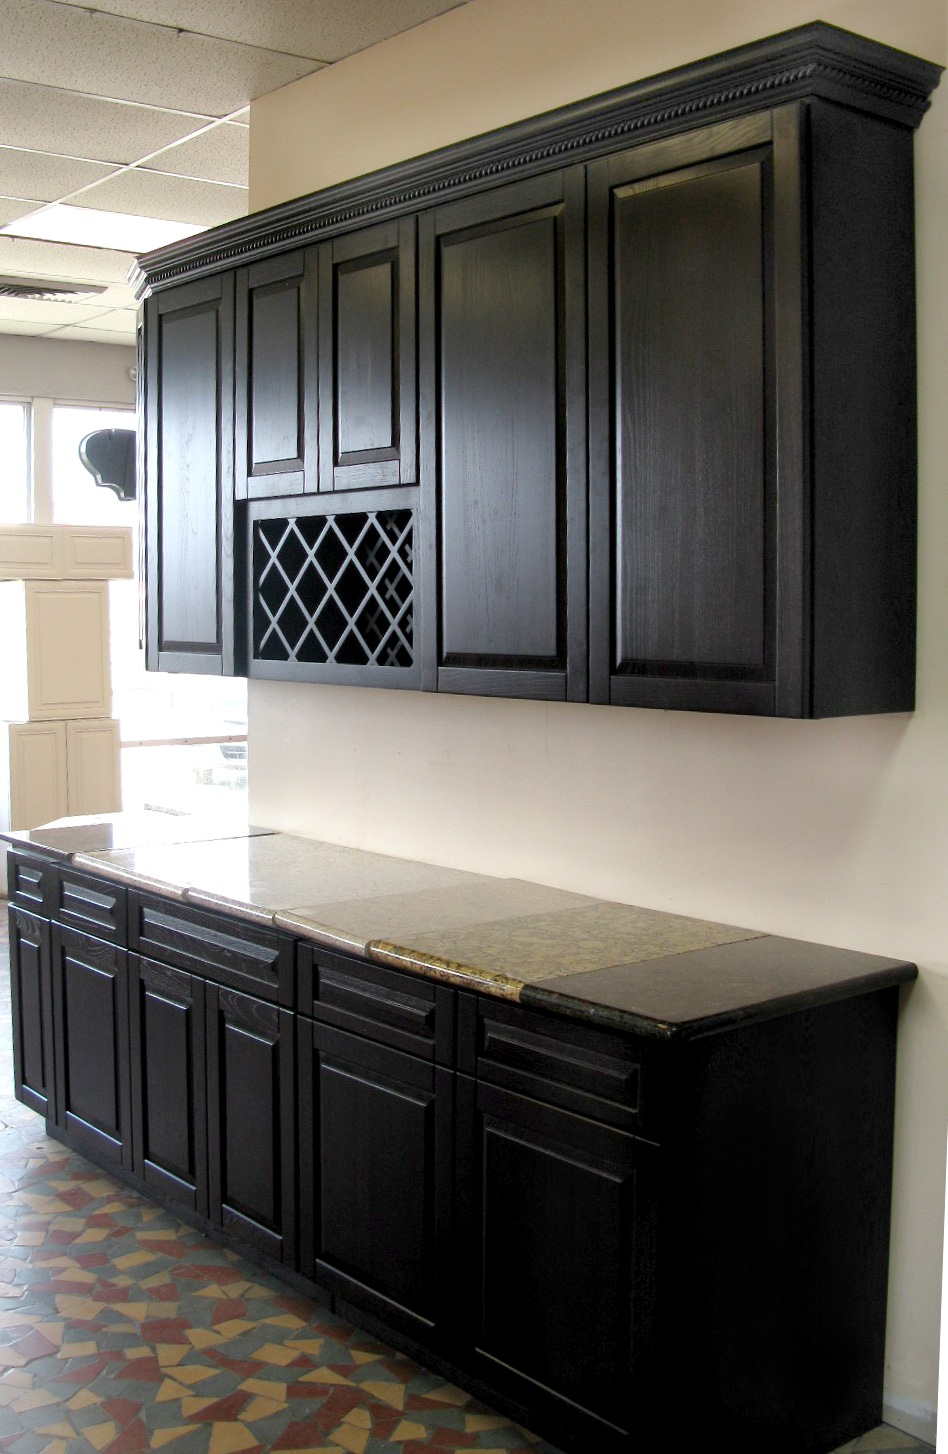 Cabinets for kitchen photos black kitchen cabinets for Kitchen cabinets designs